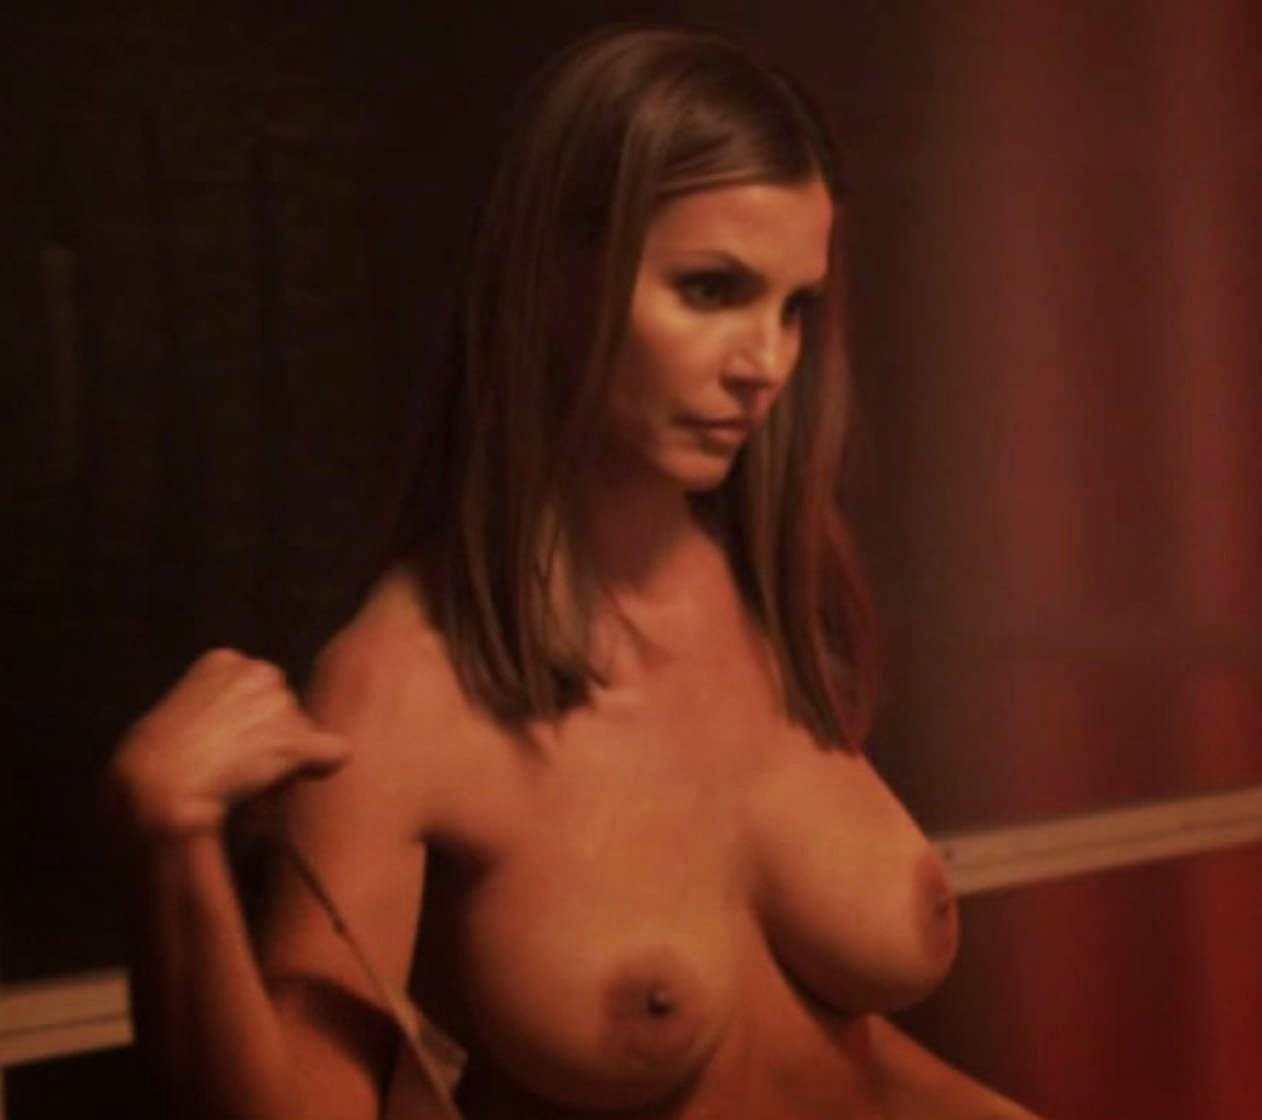 Charisma Carpenter strips for kinky S&M scenes